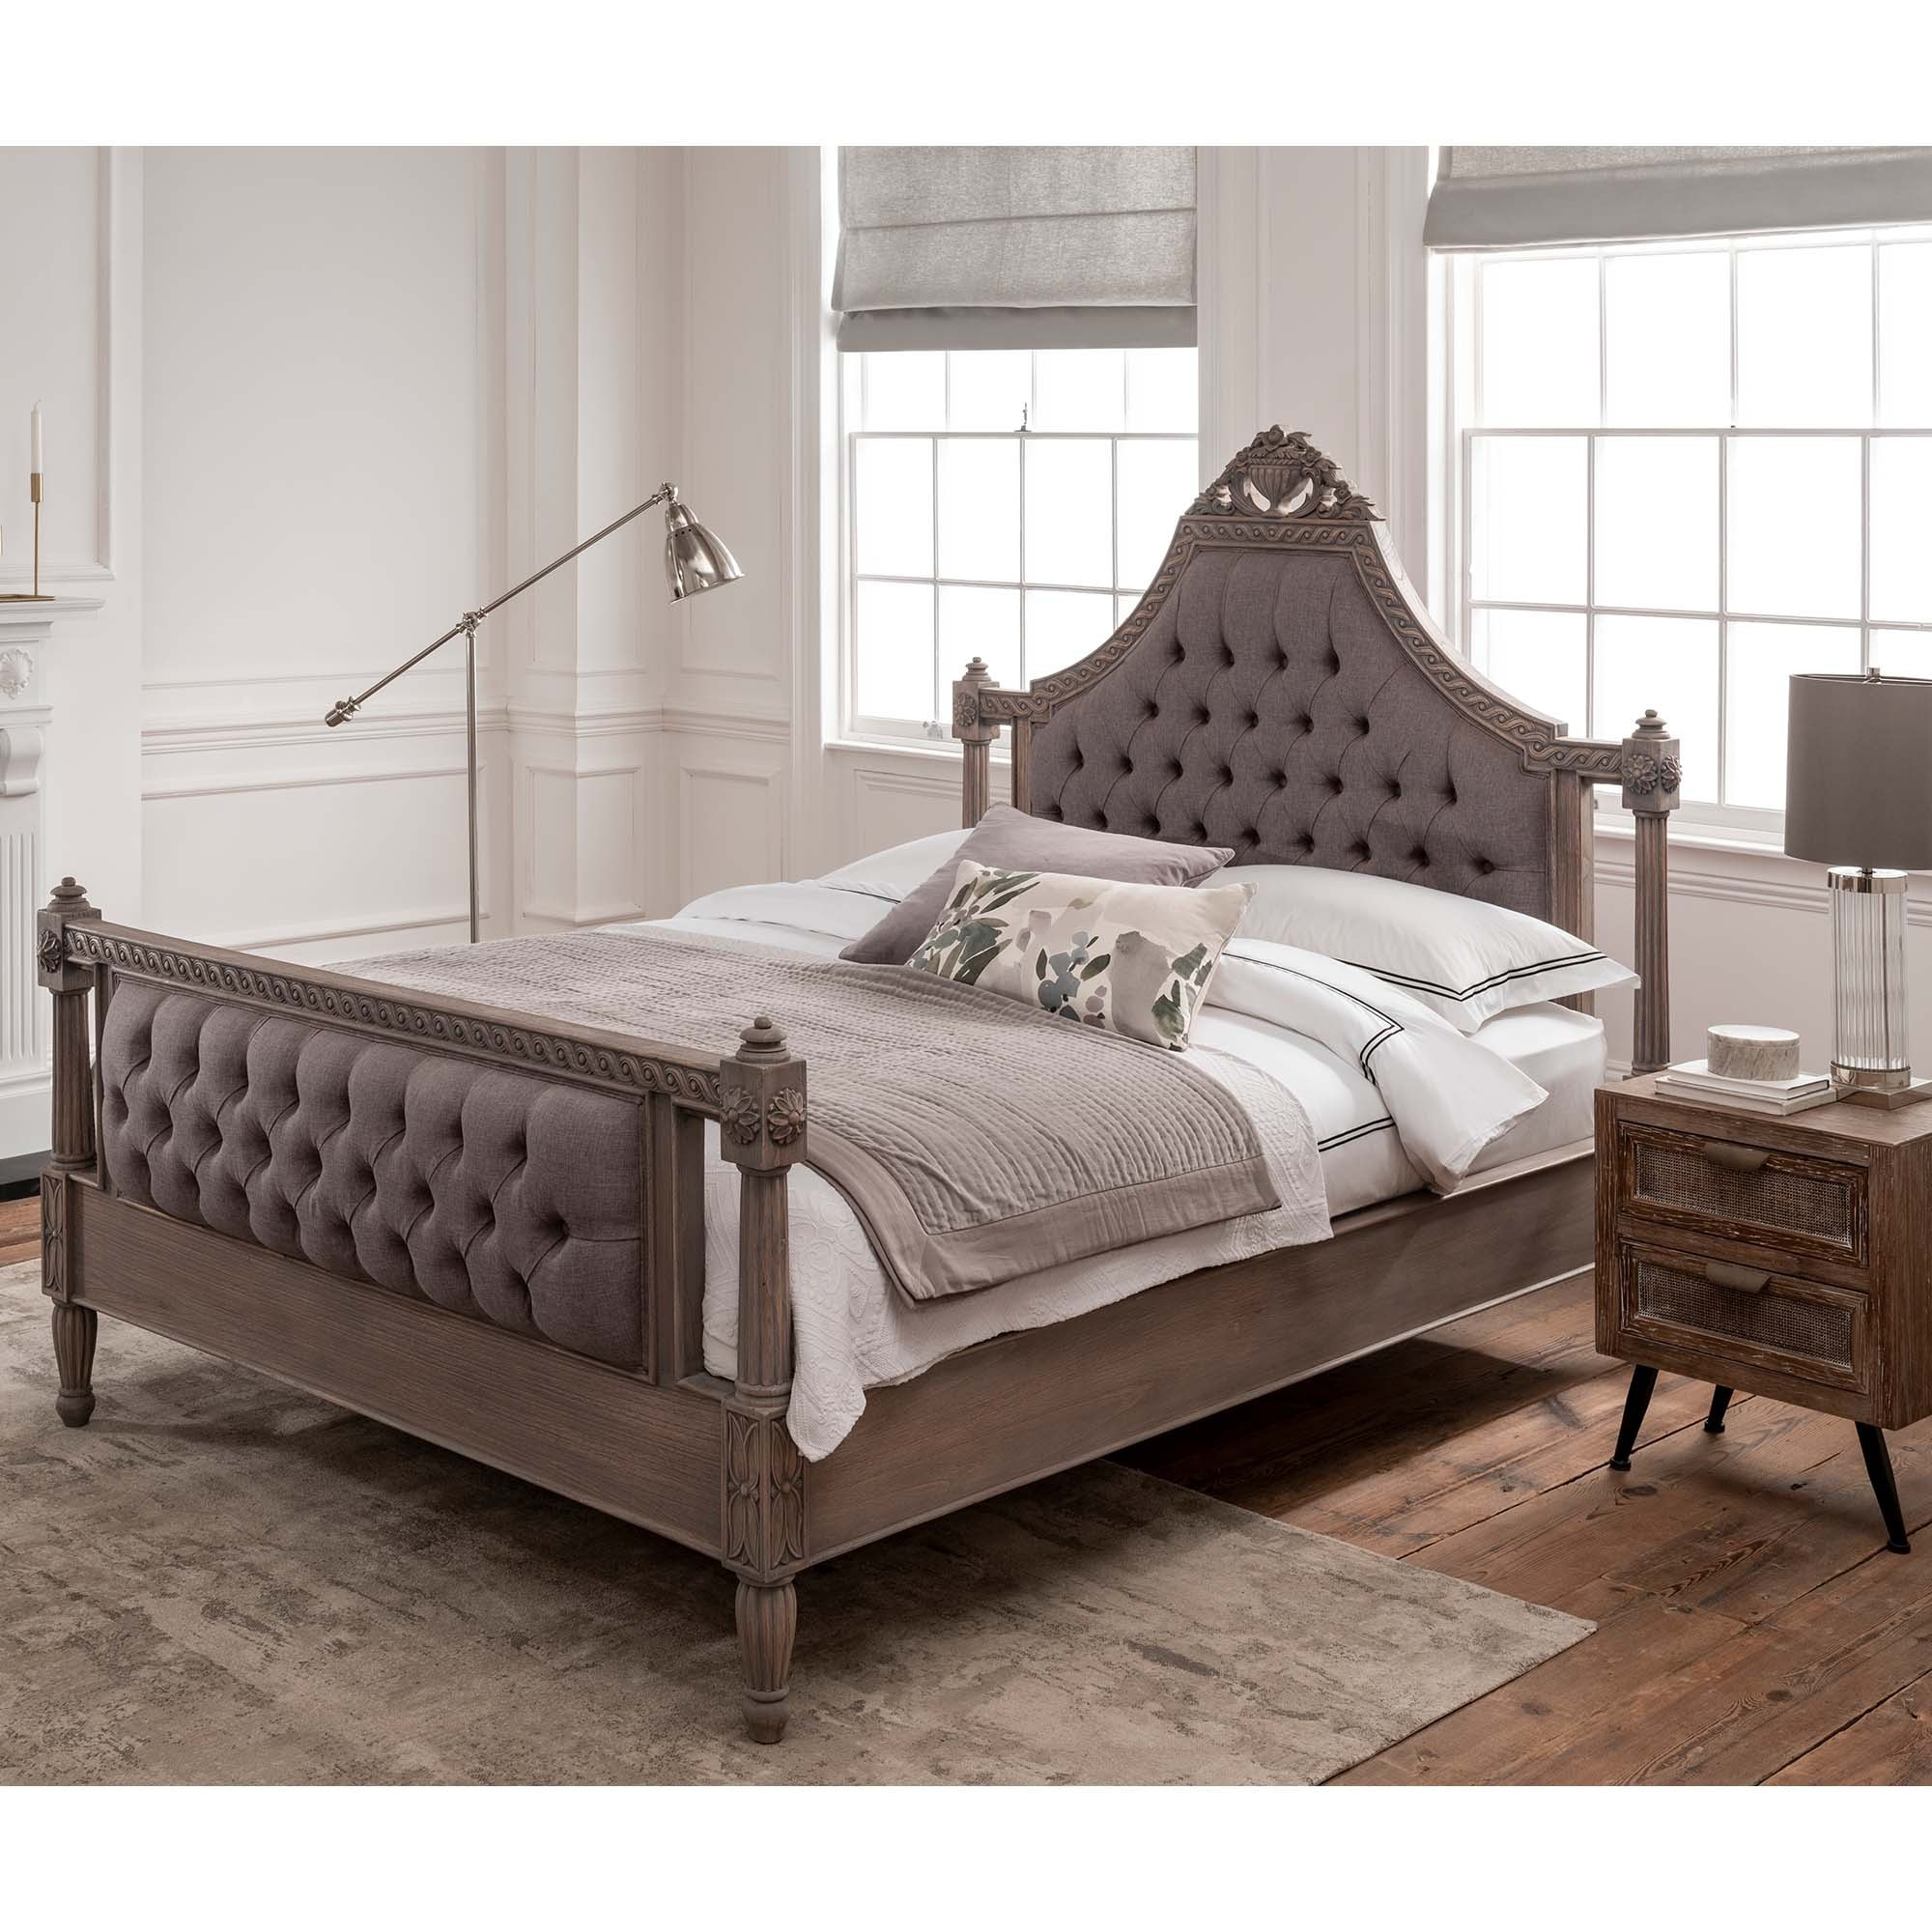 Chesterfield Wooden Bed Frame Fabric Bed Frame Wooden Bed Frame